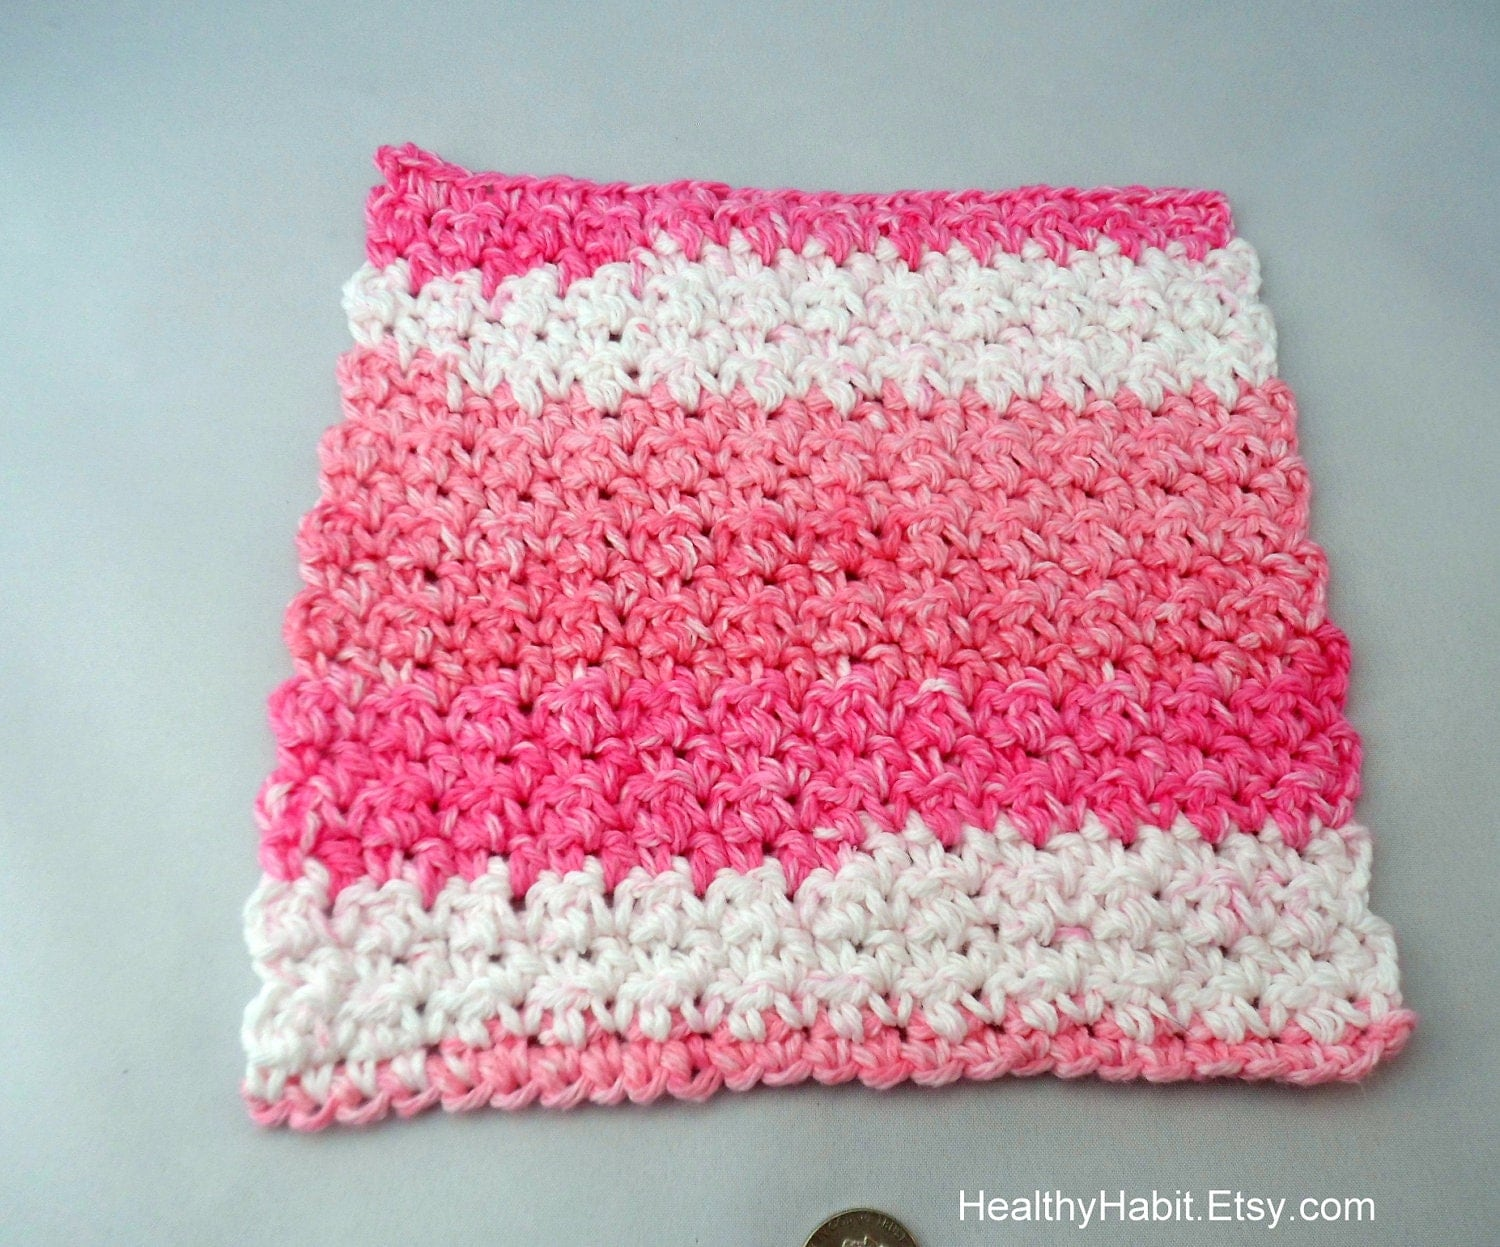 Crochet Patterns Etsy : Dishcloth Scrubbie Crochet PATTERN on Etsy - Microsoft Word Washcloth ...